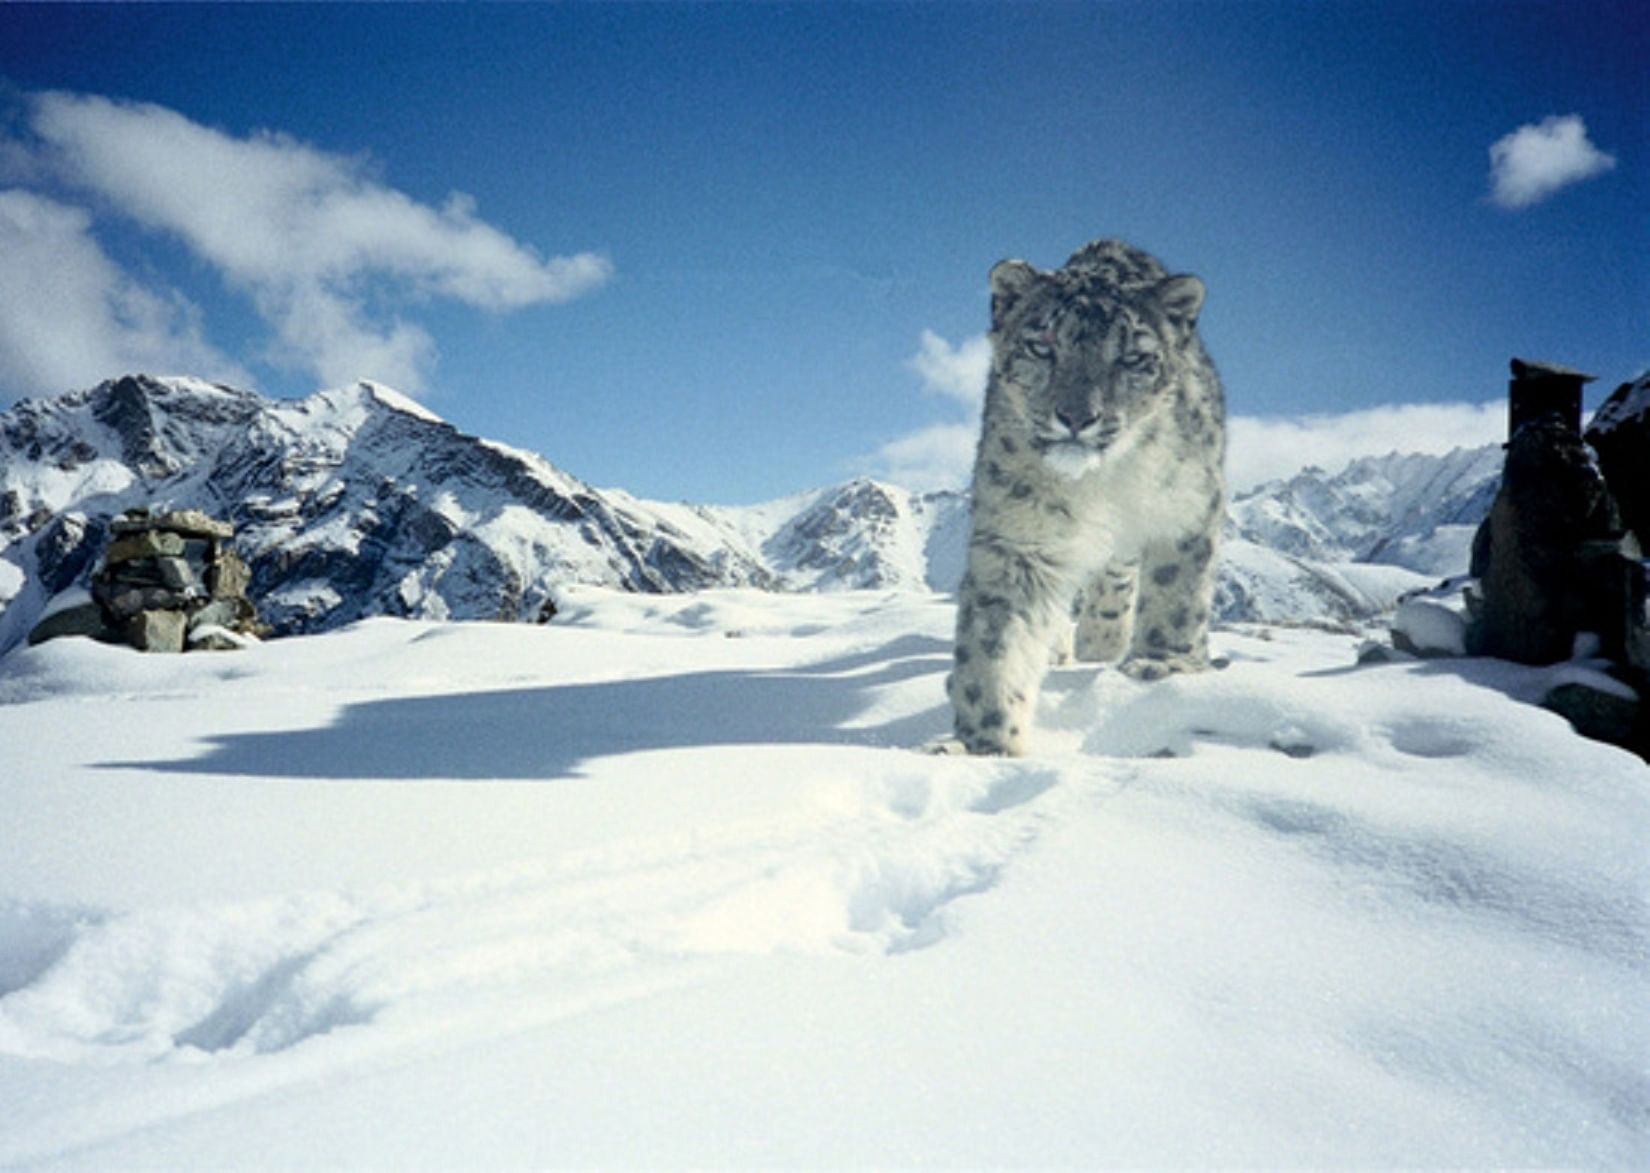 Snow leopard at Hemis National Park, India